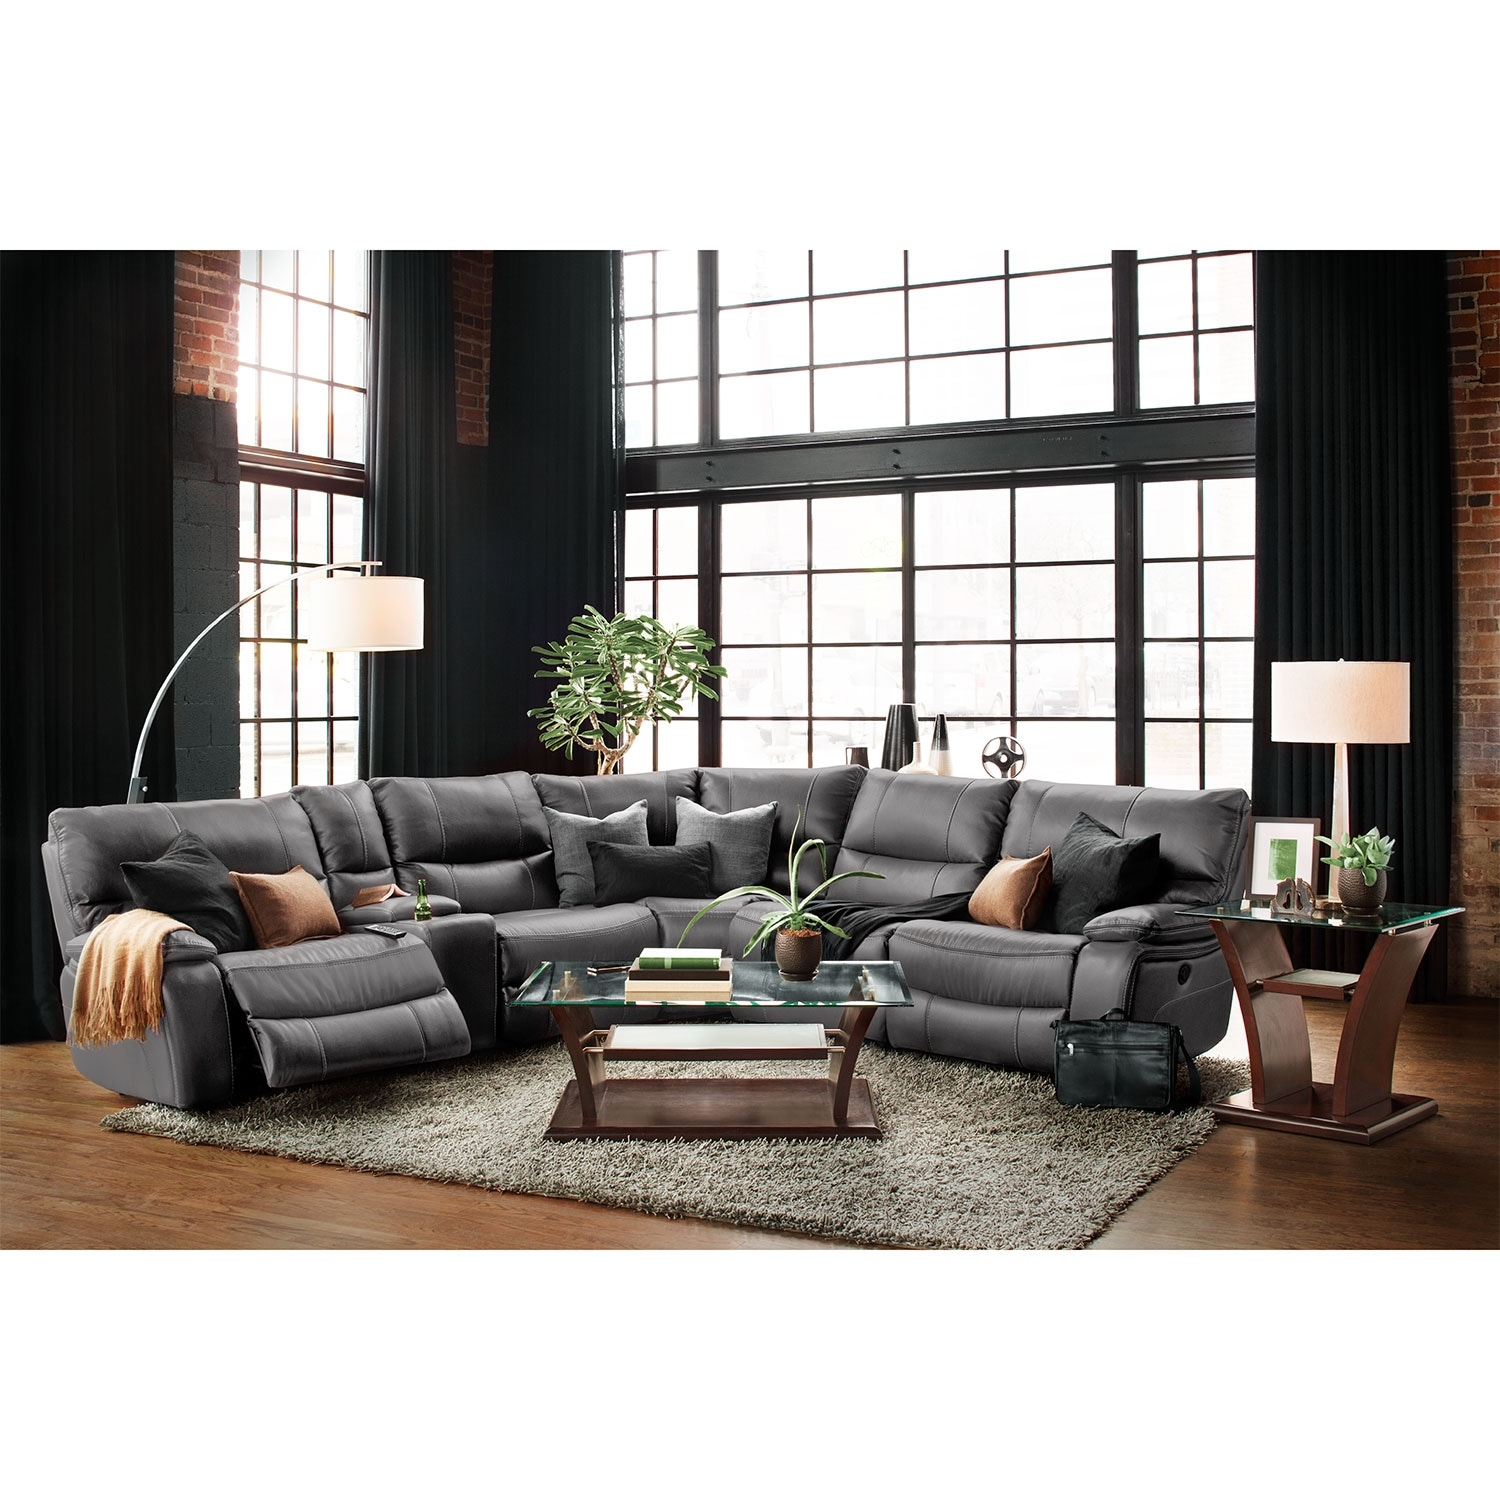 Orlando 6Piece Power Reclining Sectional with 1